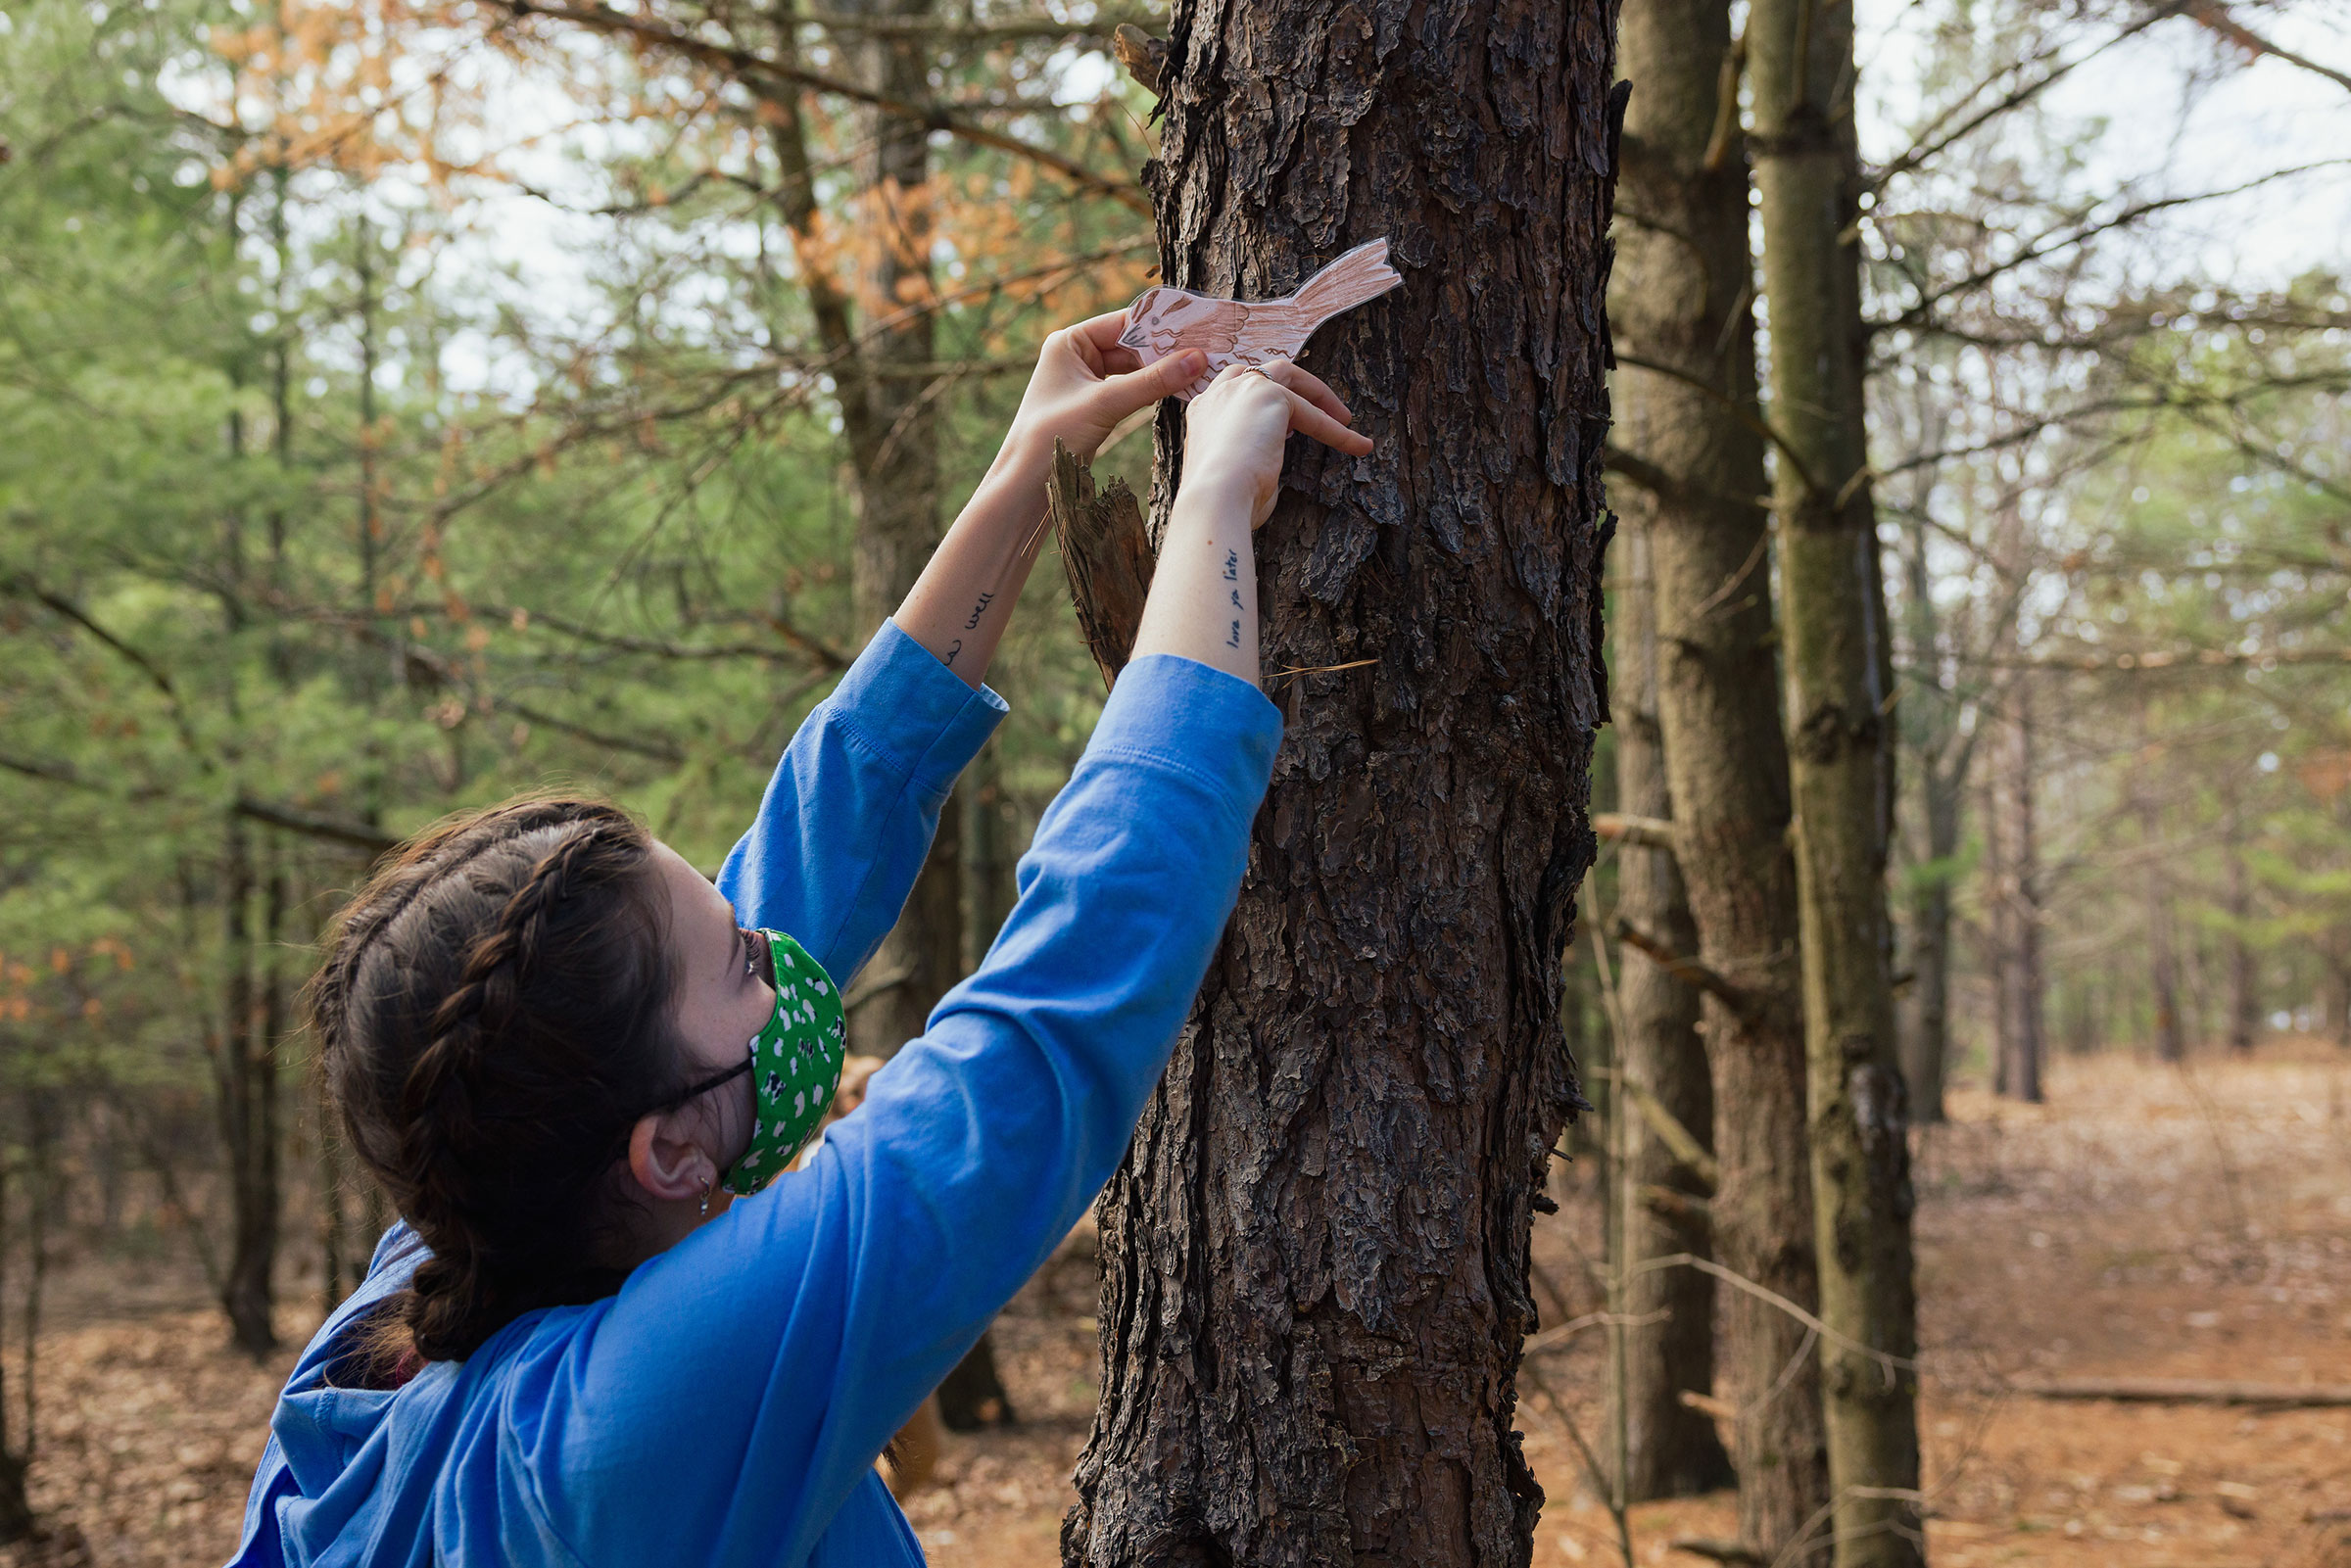 A University of Vermont student with brown hair and wearing a blue long-sleeved shirt reaches up the trunk of a big tree to attach a cut-out drawing of a bird as part of a scavenger hunt activity planned for Flynn Elementary School mentees.